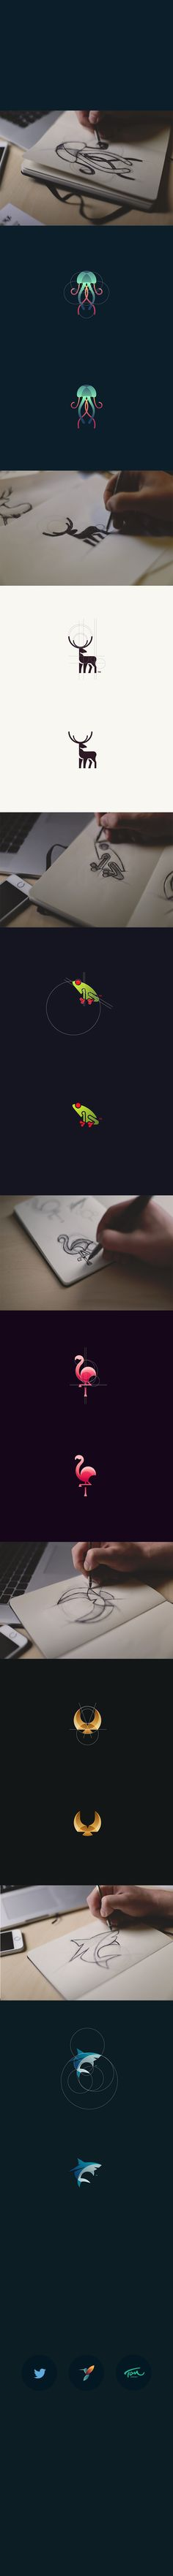 Animal Logos Vol 2 Art Direction, Branding, Graphic Design